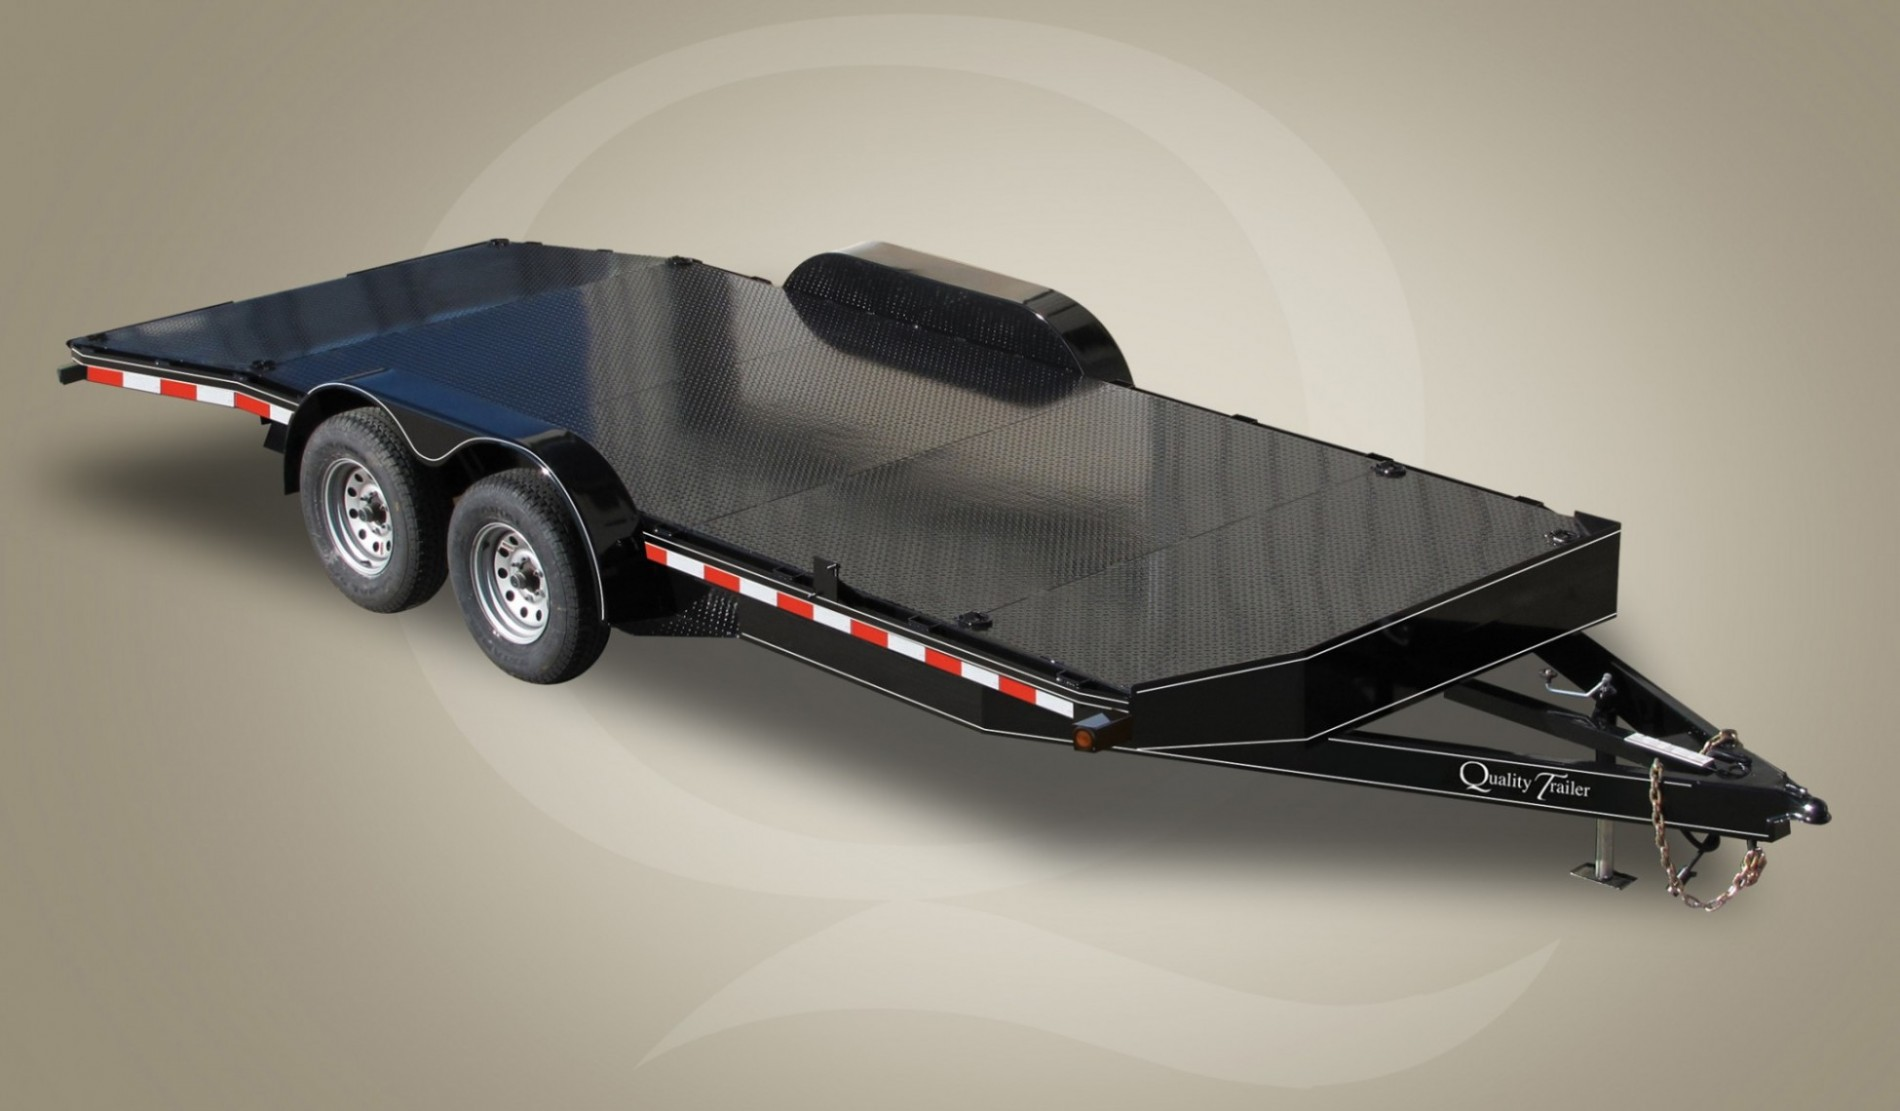 Diamond Deck Car Hauler